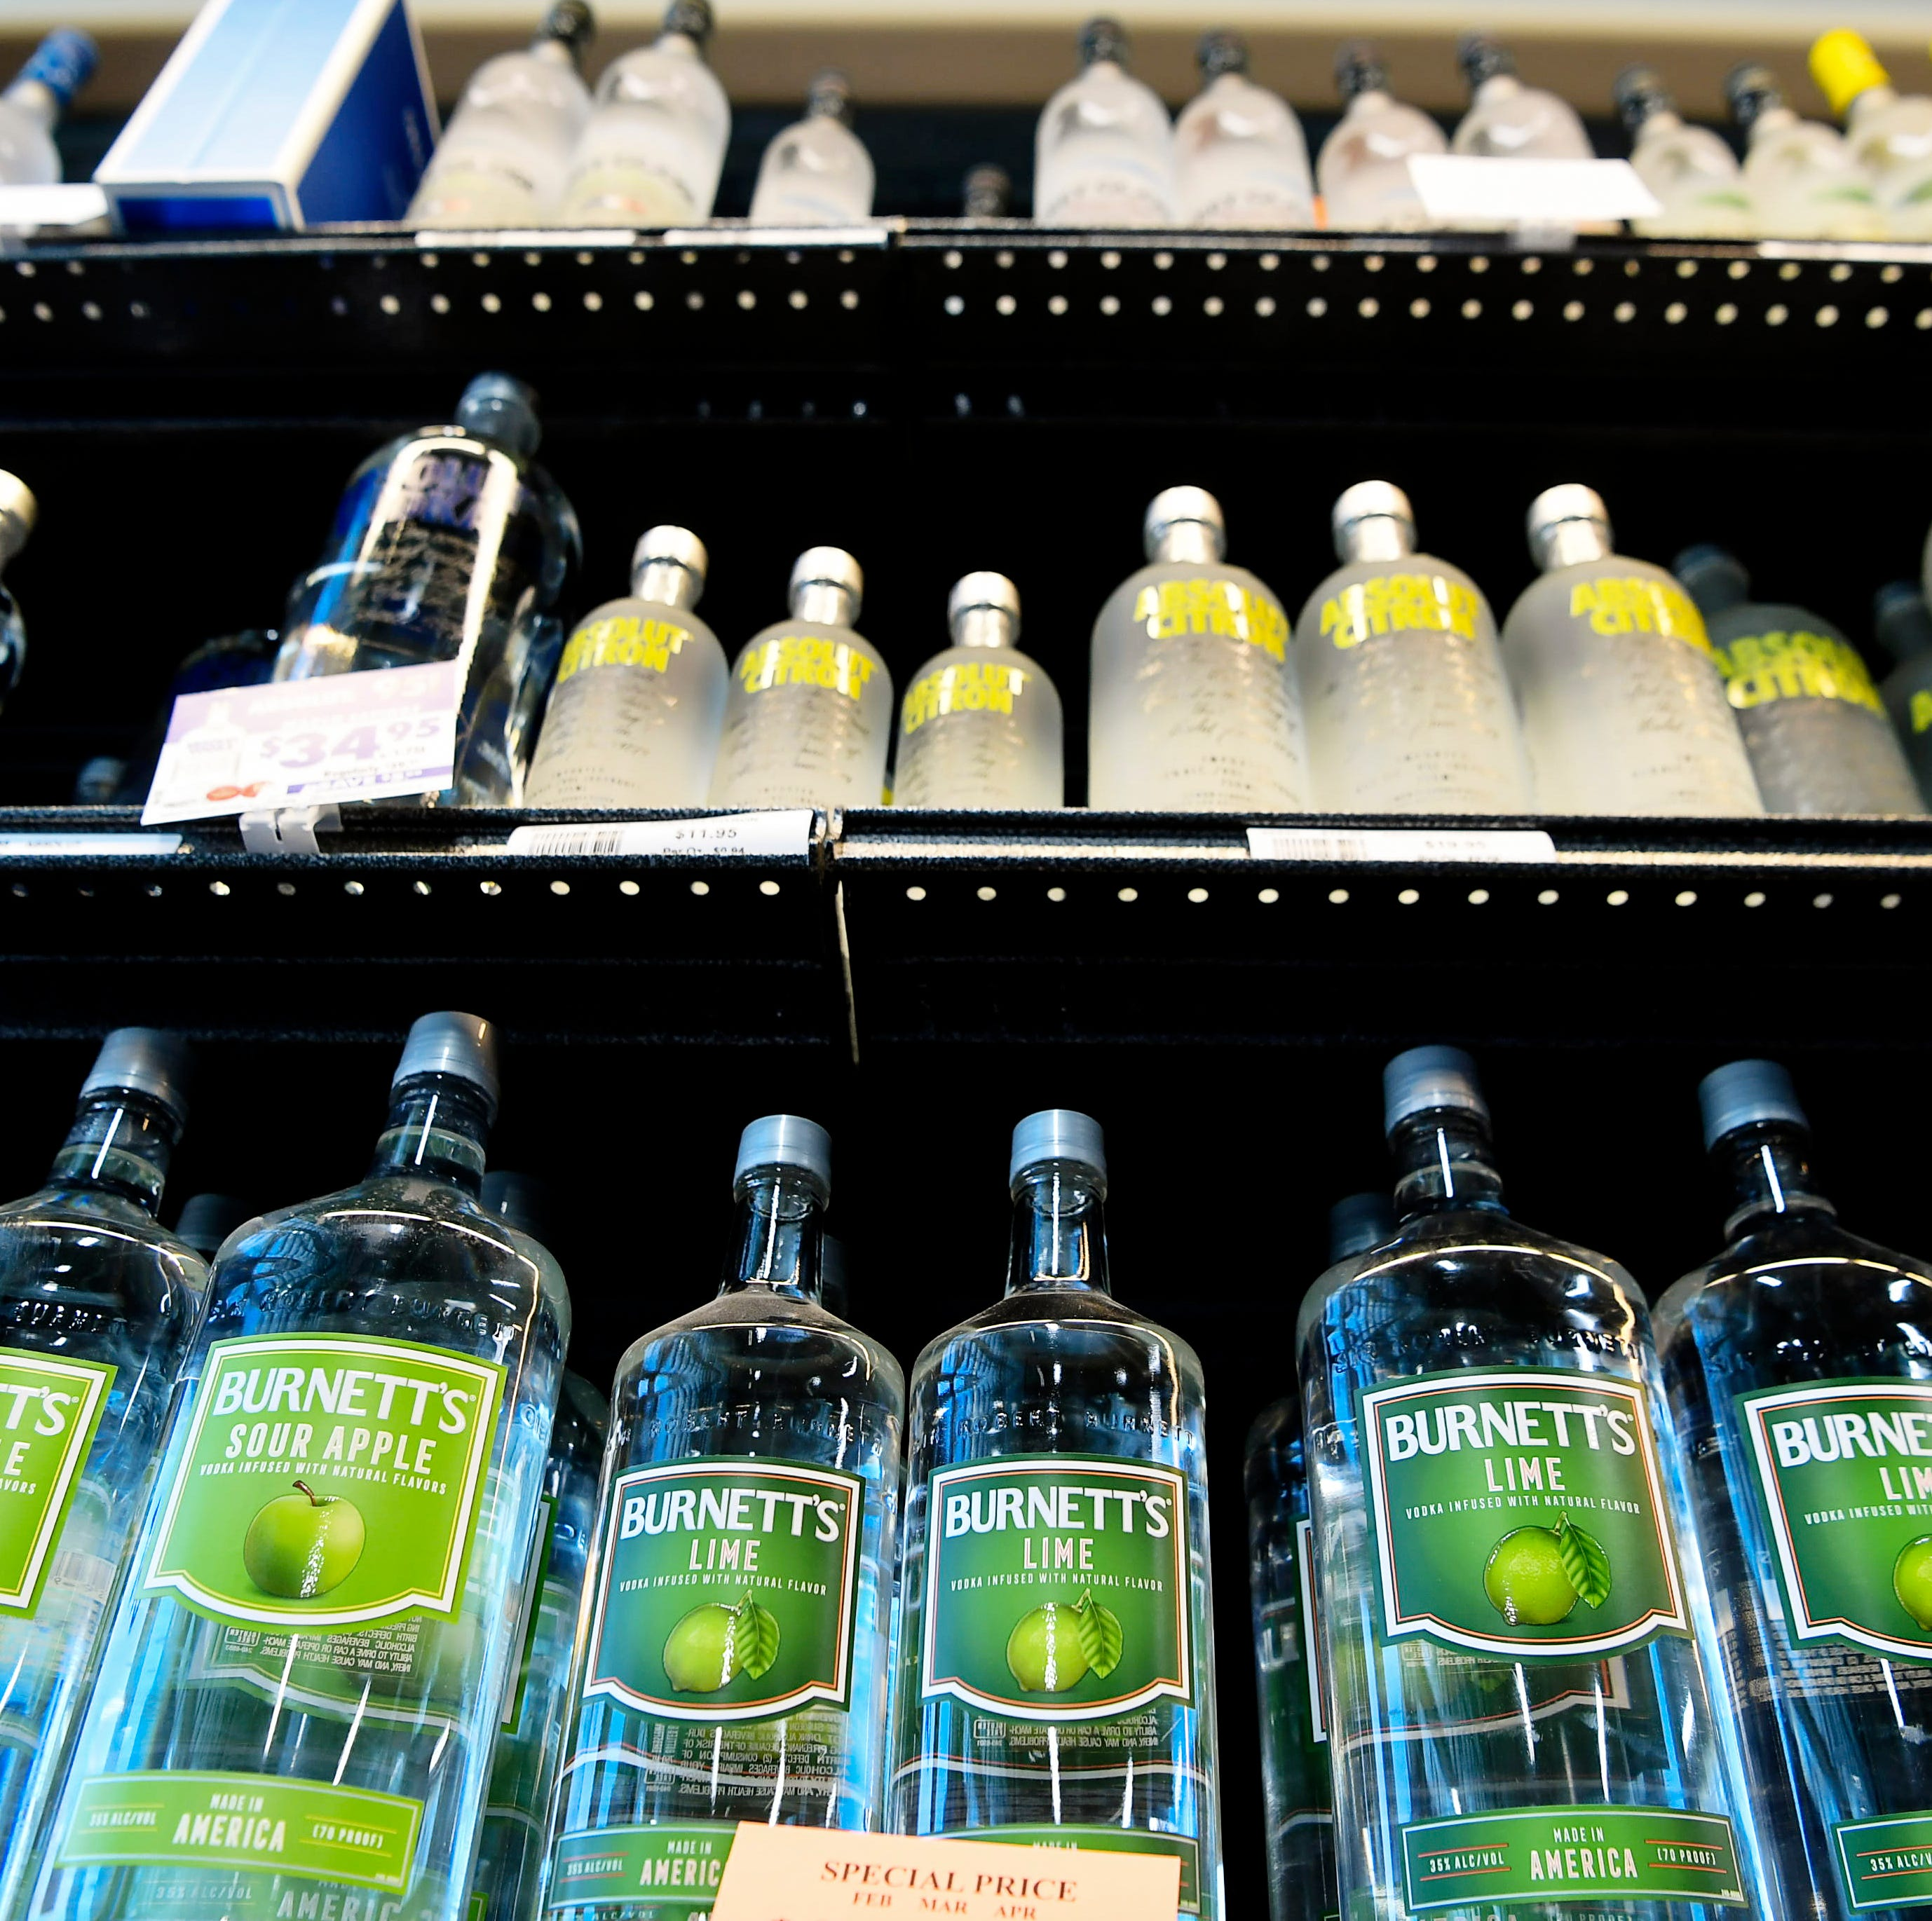 NC liquor privatization: More convenience? Higher prices? Public health problems?